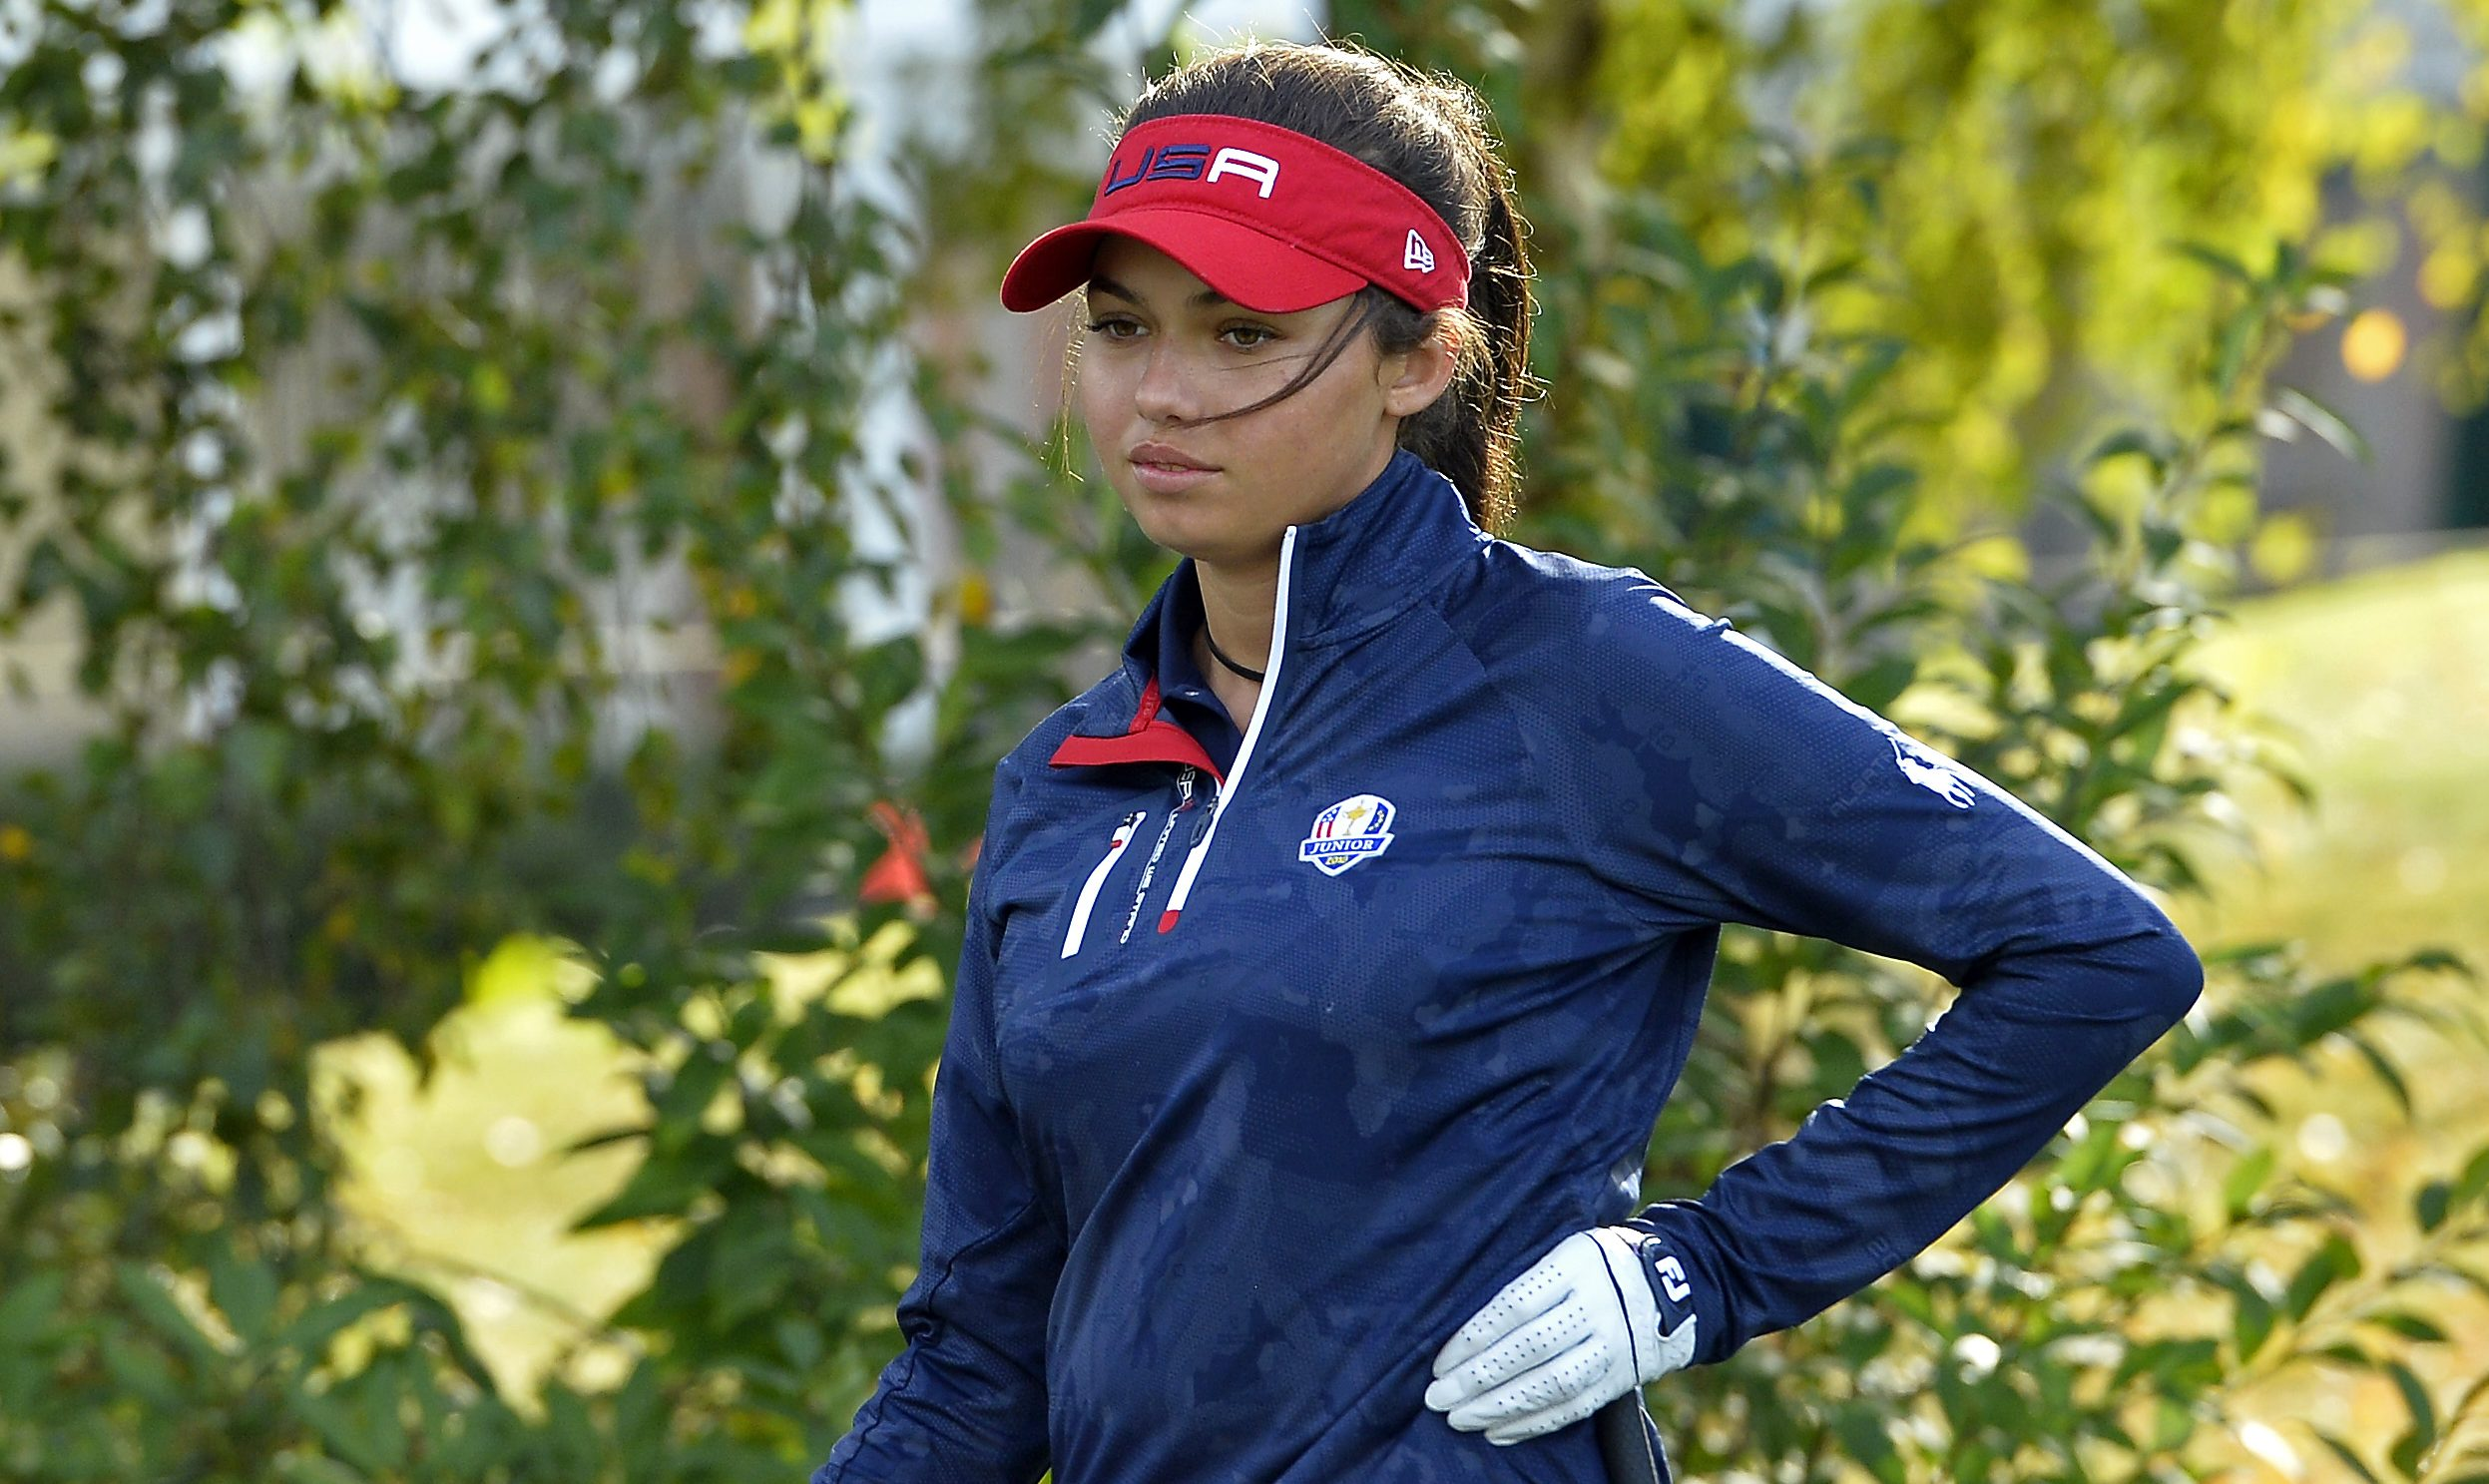 PARIS, FRANCE - SEPTEMBER 22: Alexa Pano of the United States reacts during a training session prior to the Junior Ryder Cup at Disneyland Paris on September 22, 2018 in Paris, France. (Photo by Aurelien Meunier/Getty Images)